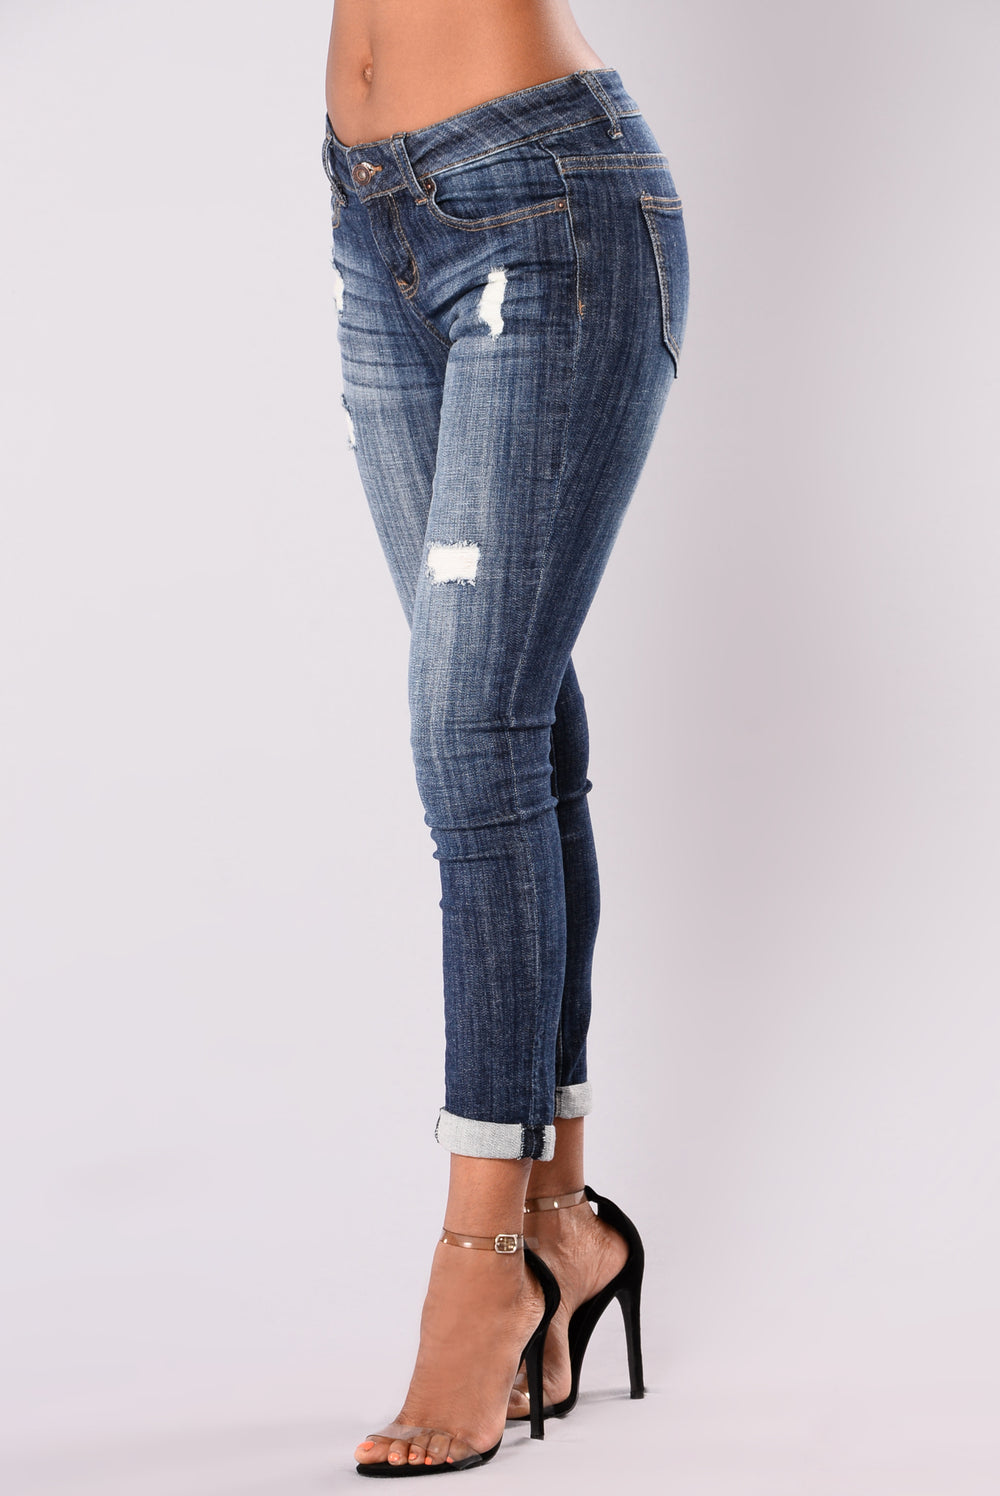 All I Do For You Crop Jeans - Dark Wash